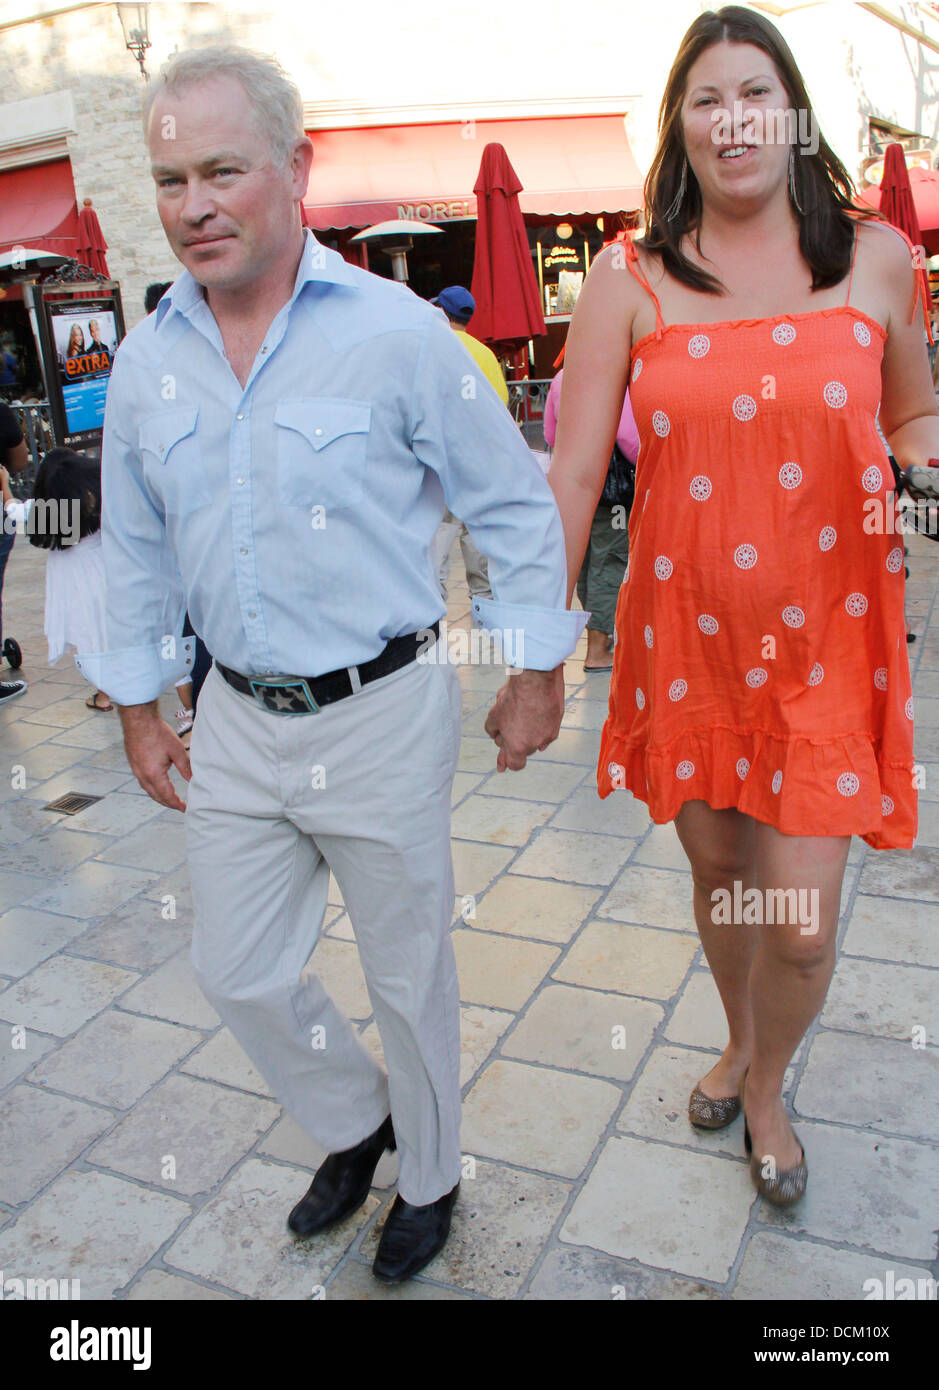 Ruve Robertson High Resolution Stock Photography And Images Alamy Последние твиты от ruairi robertson phd (@ruairirobertson). https www alamy com stock photo neal mcdonough and his wife ruve robertson taking a stroll at the 59446826 html